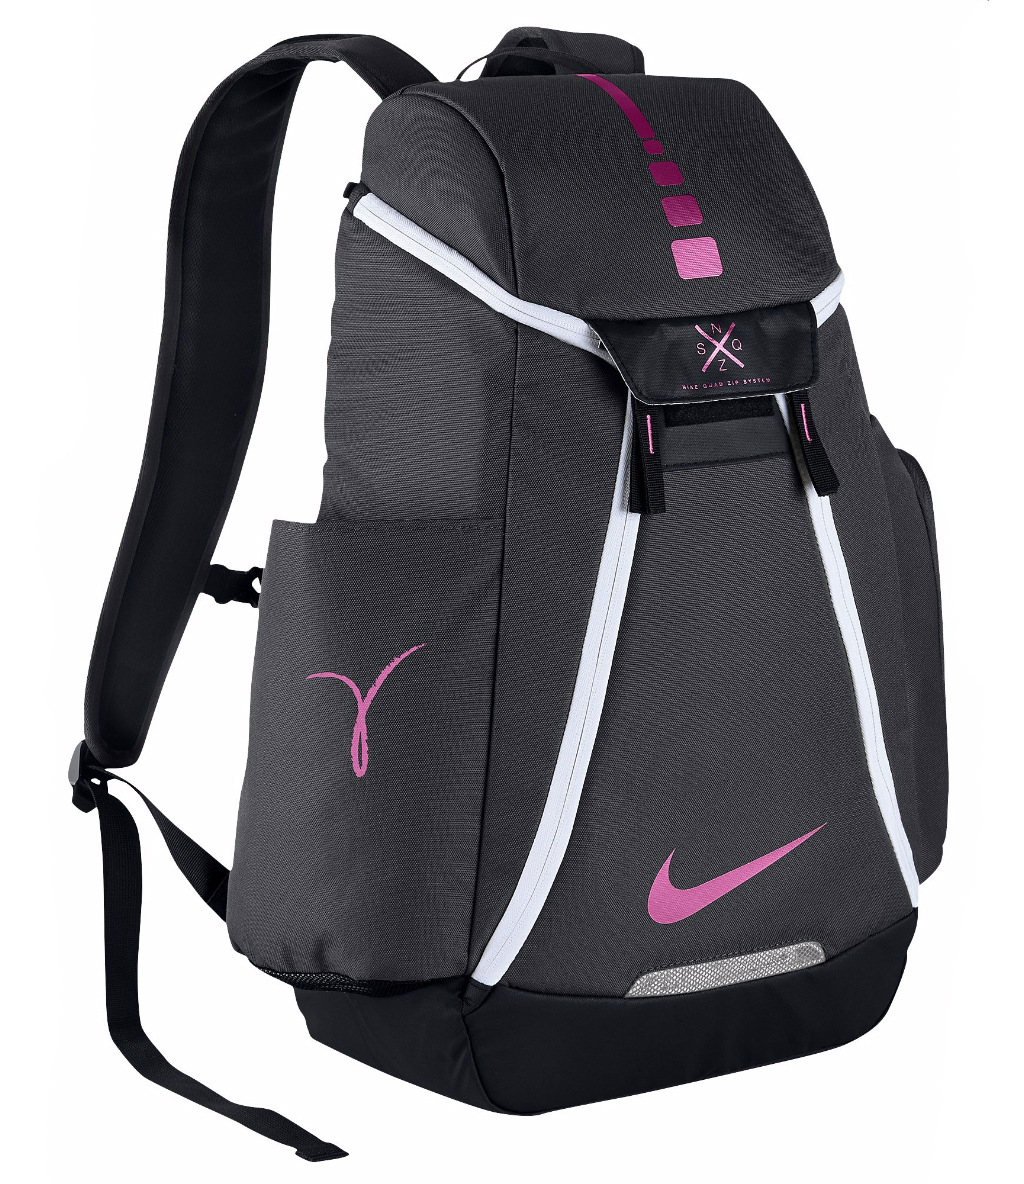 Nike Hoops Elite Max Air Team 2.0 Basketball Backpack | eBay